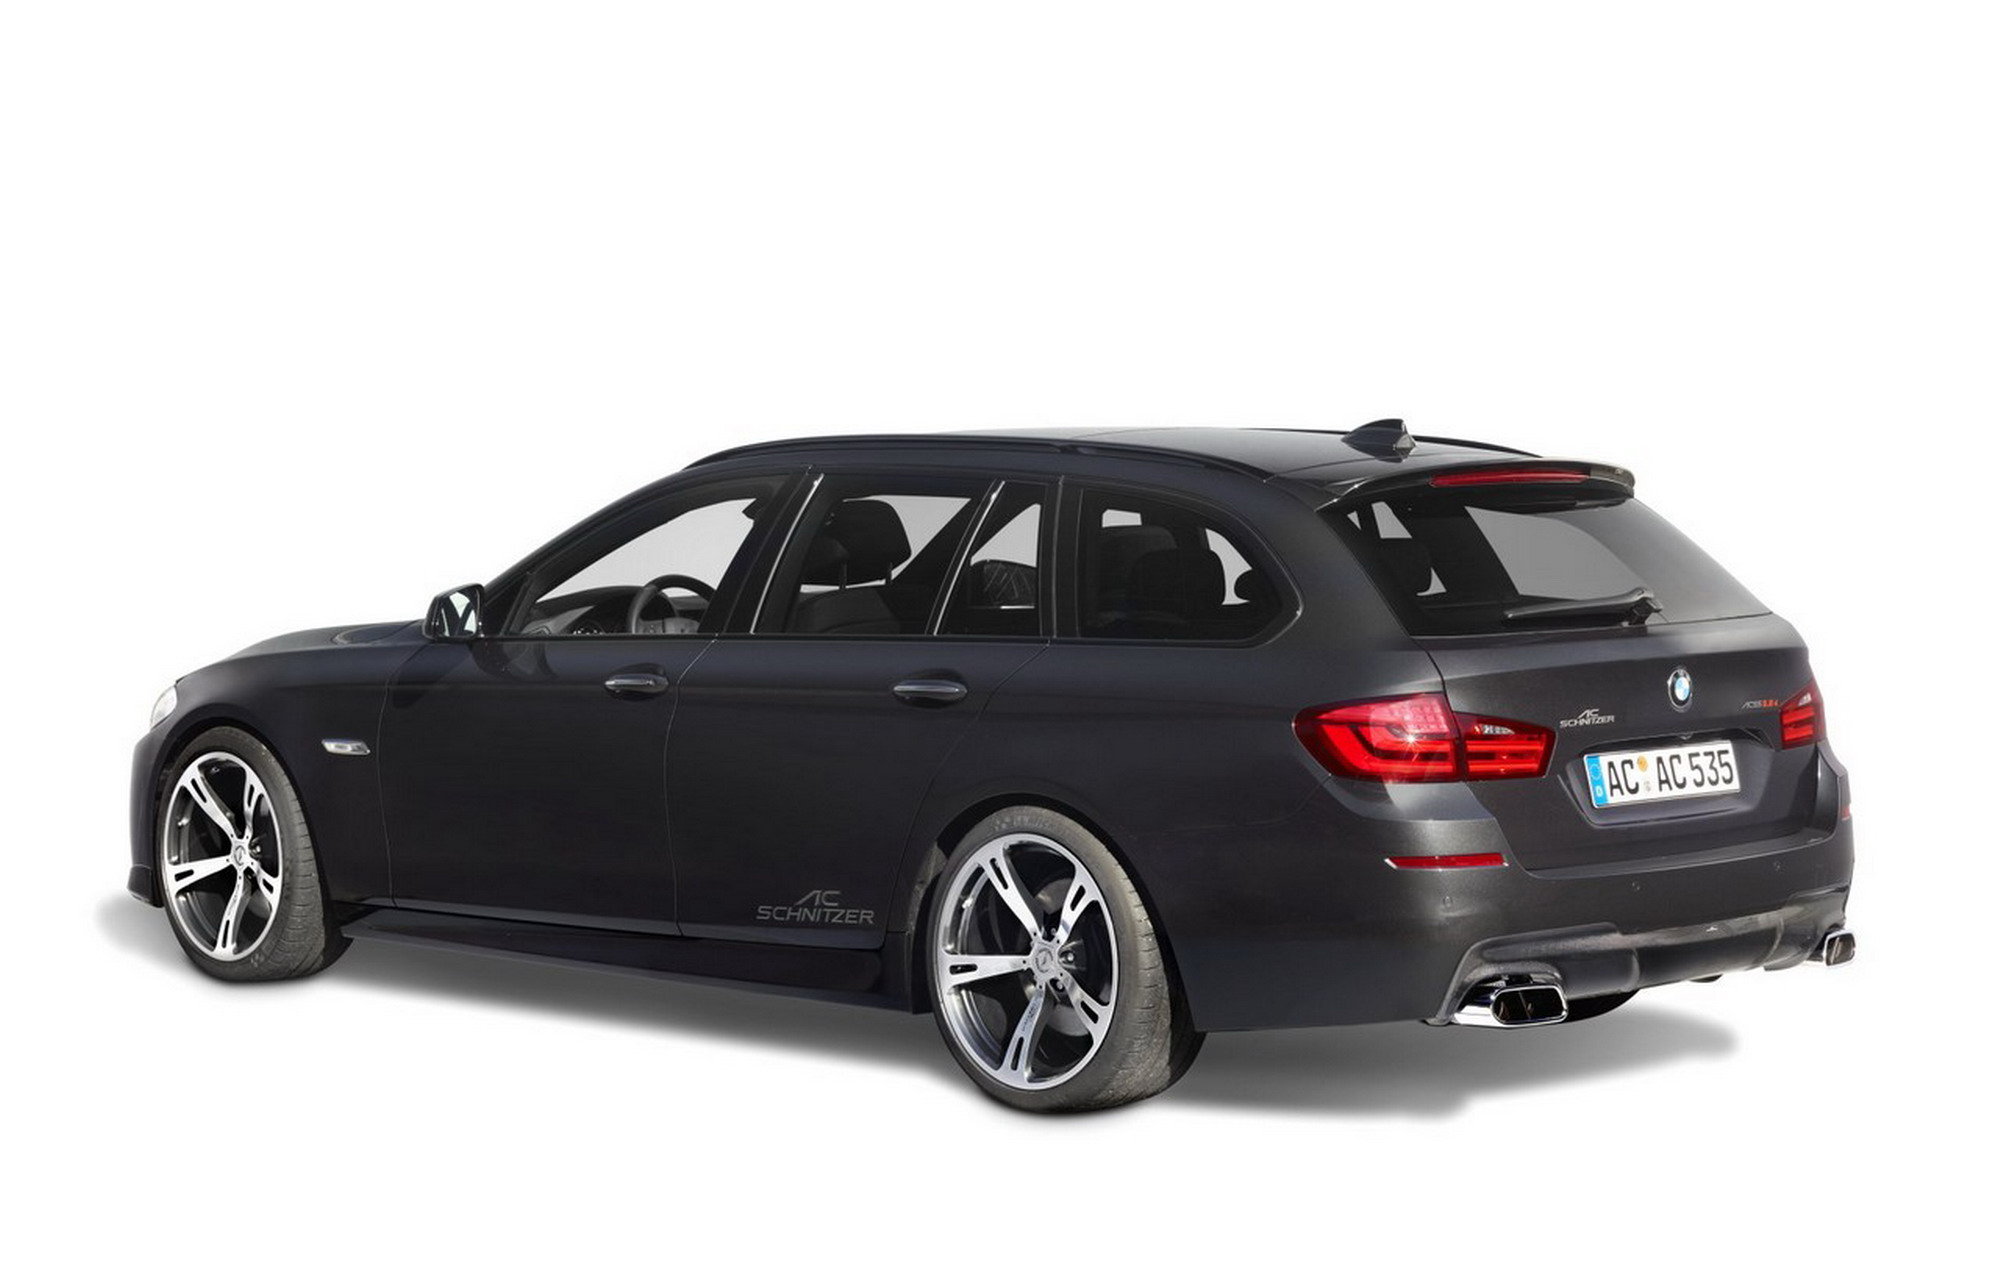 2011 bmw 5 series touring f11 photos features price. Black Bedroom Furniture Sets. Home Design Ideas